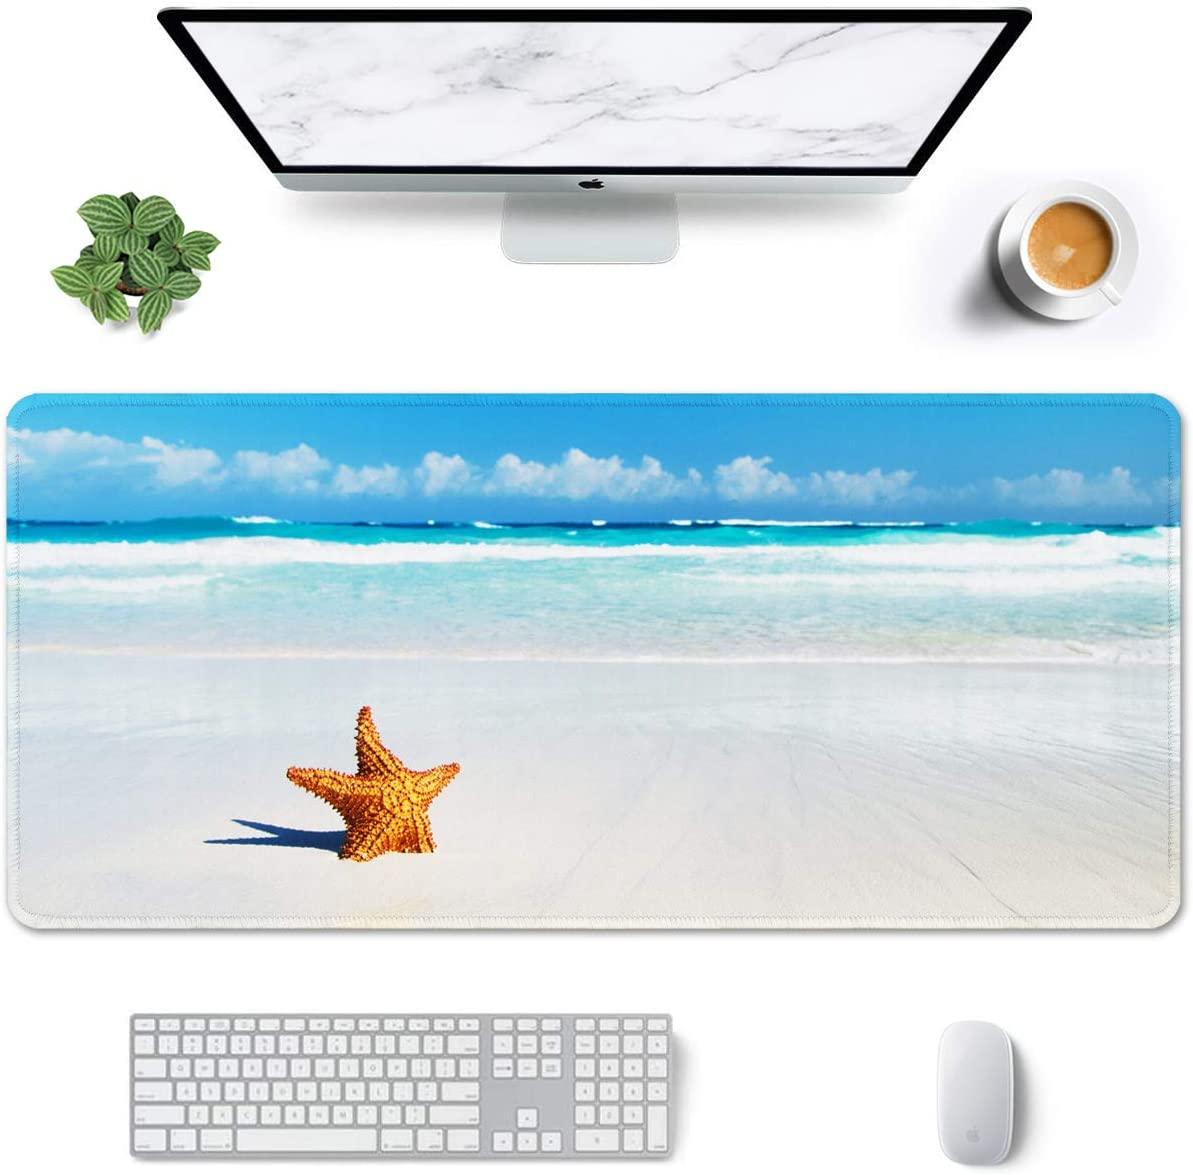 """Auhoahsil Large Mouse Pad, Full Desk XXL Extended Gaming Mouse Pad 35"""" X 15"""", Waterproof Desktop Mat with Stitched Edges, Non-Slip Laptop Computer Keyboard Mousepad for Office and Home, Beach Design"""